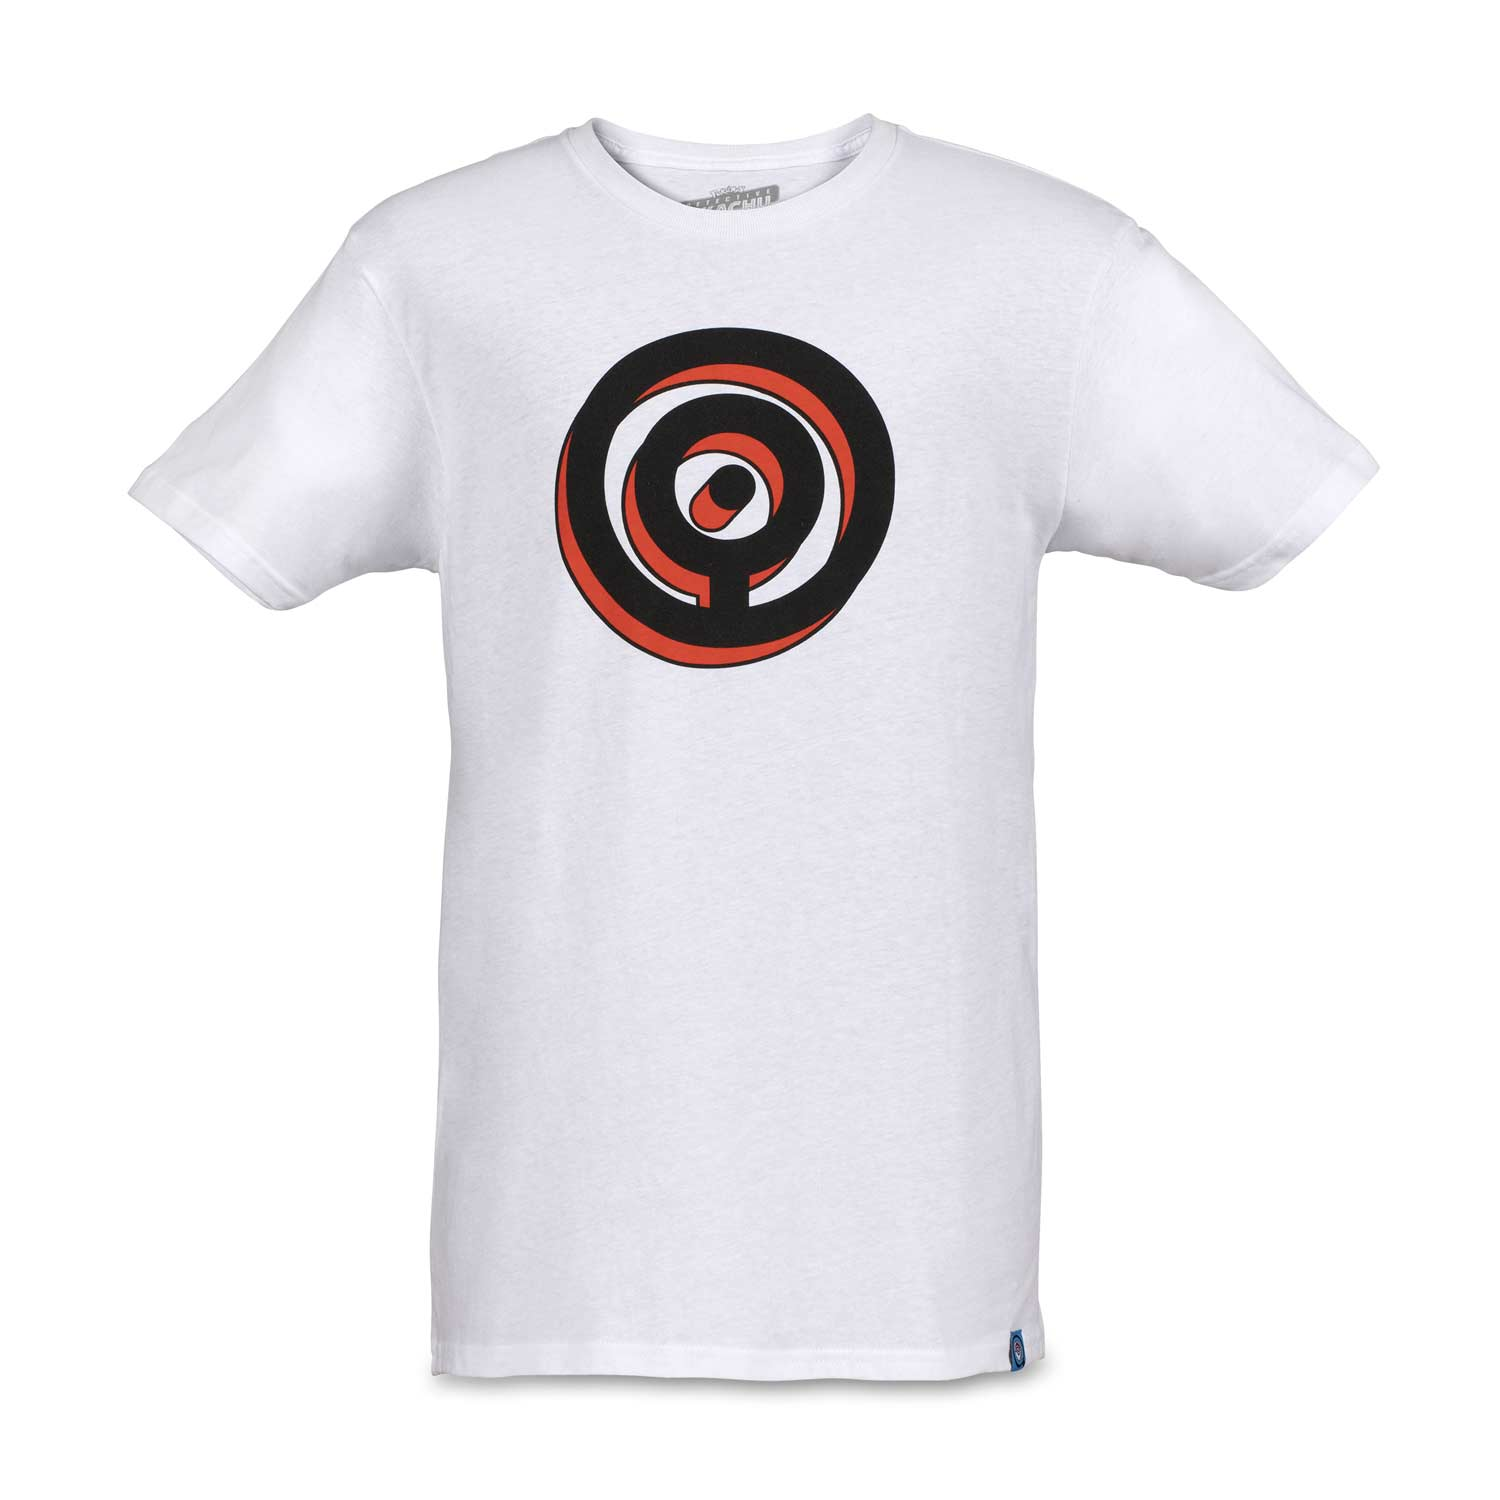 c39cc99b Image for POKÉMON Detective Pikachu Unown O Relaxed Fit Crew Neck T-Shirt -  Adult